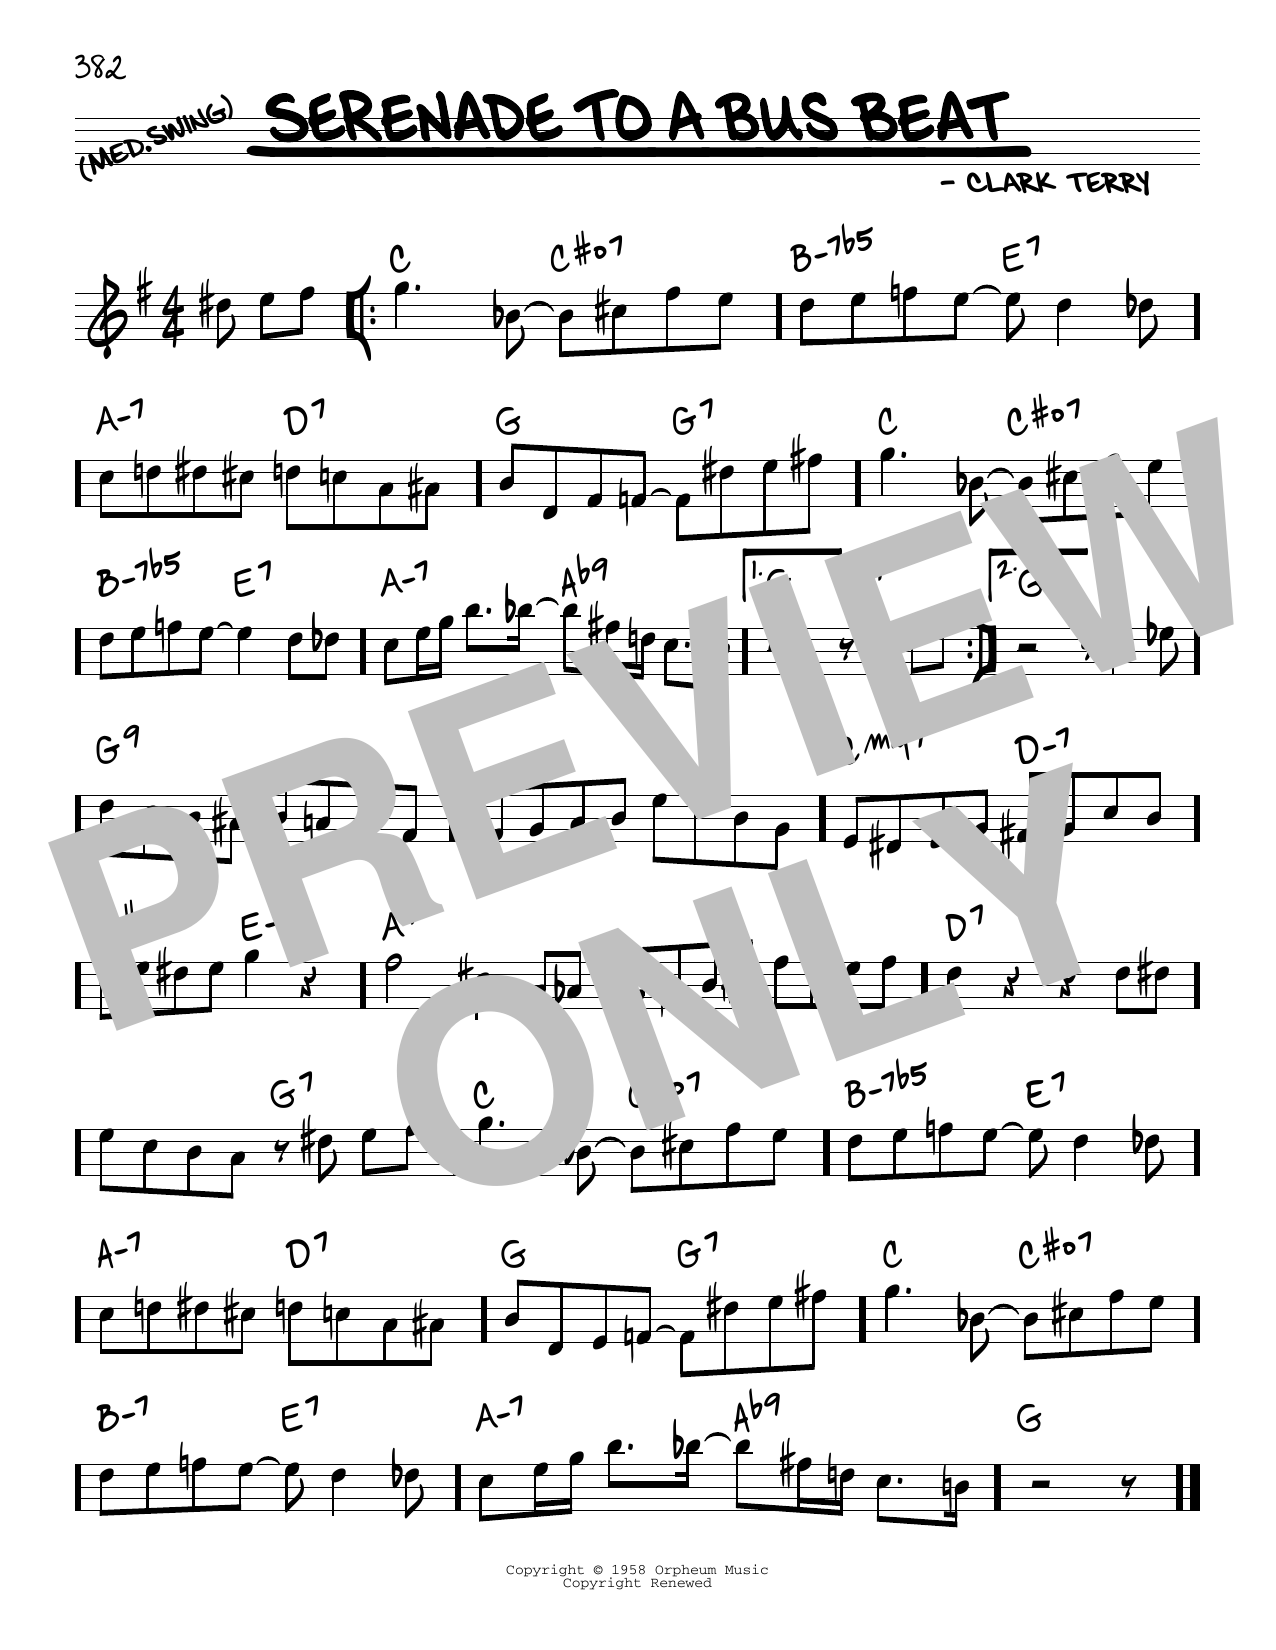 Clark Terry Serenade To A Bus Beat sheet music notes and chords. Download Printable PDF.